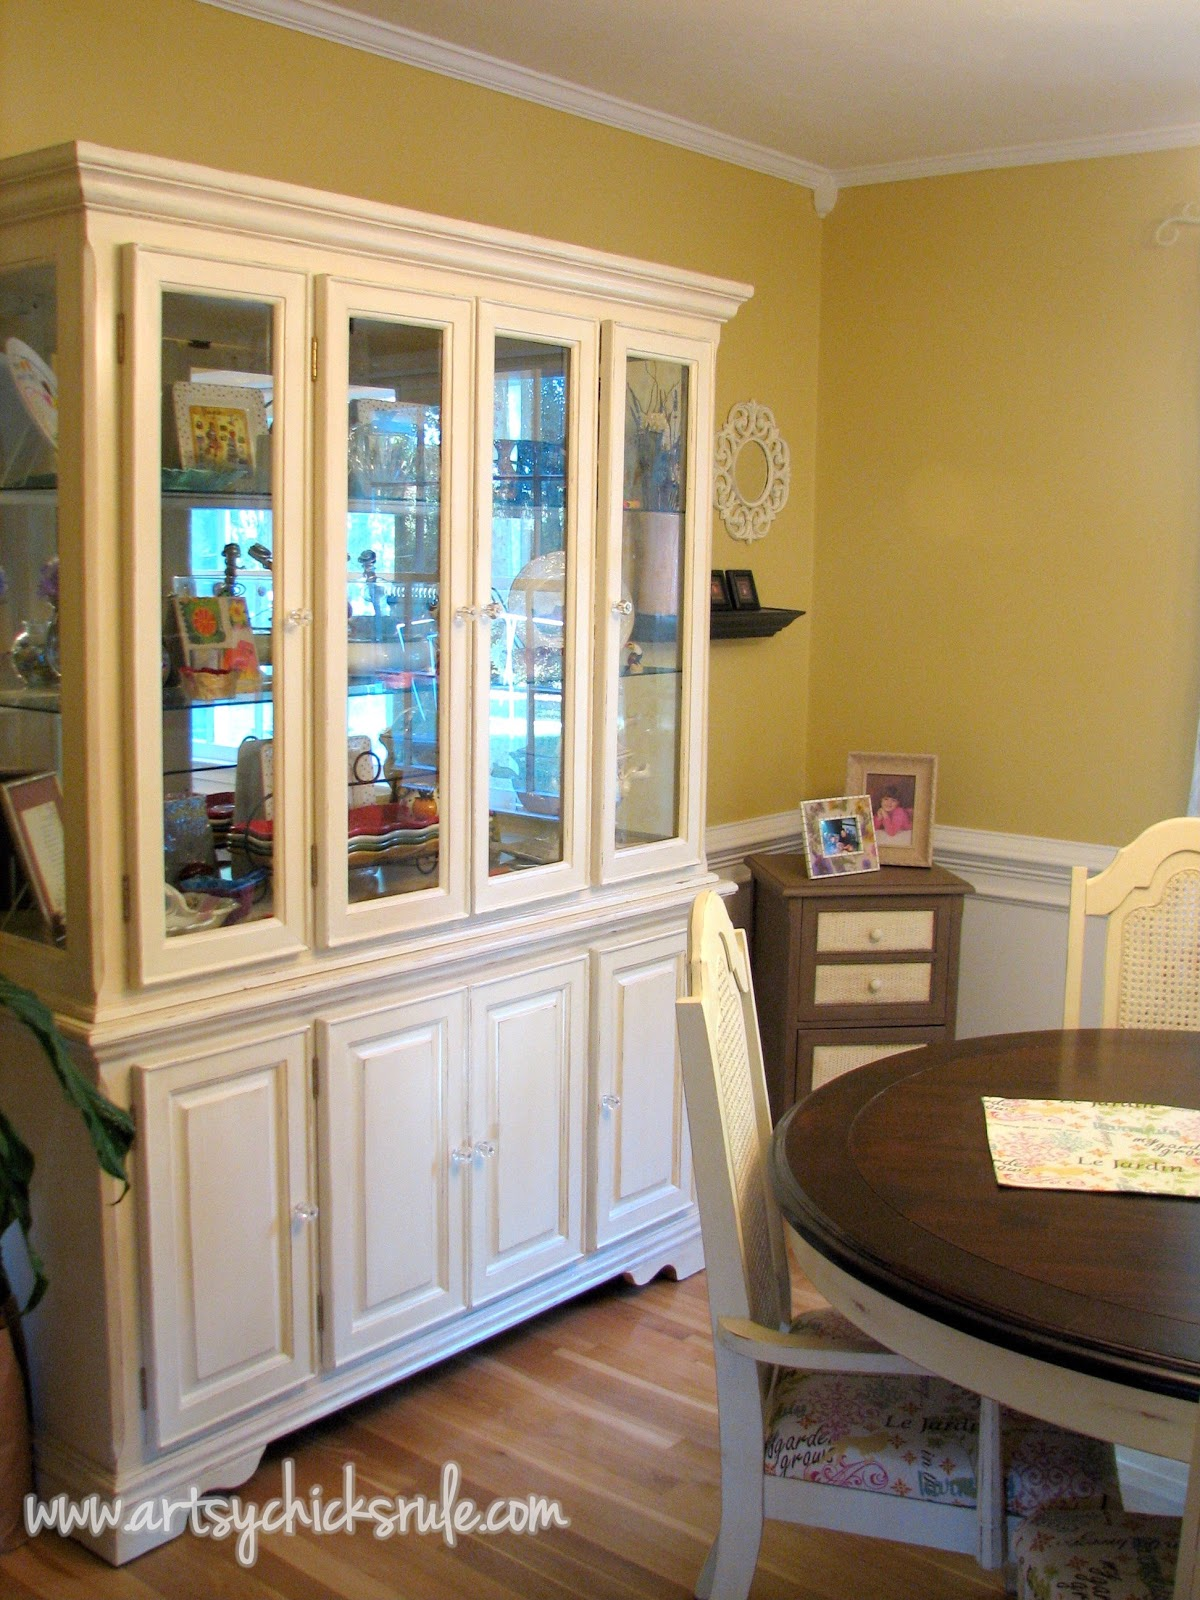 China Cabinet And Table Re Do Artsychicksrule